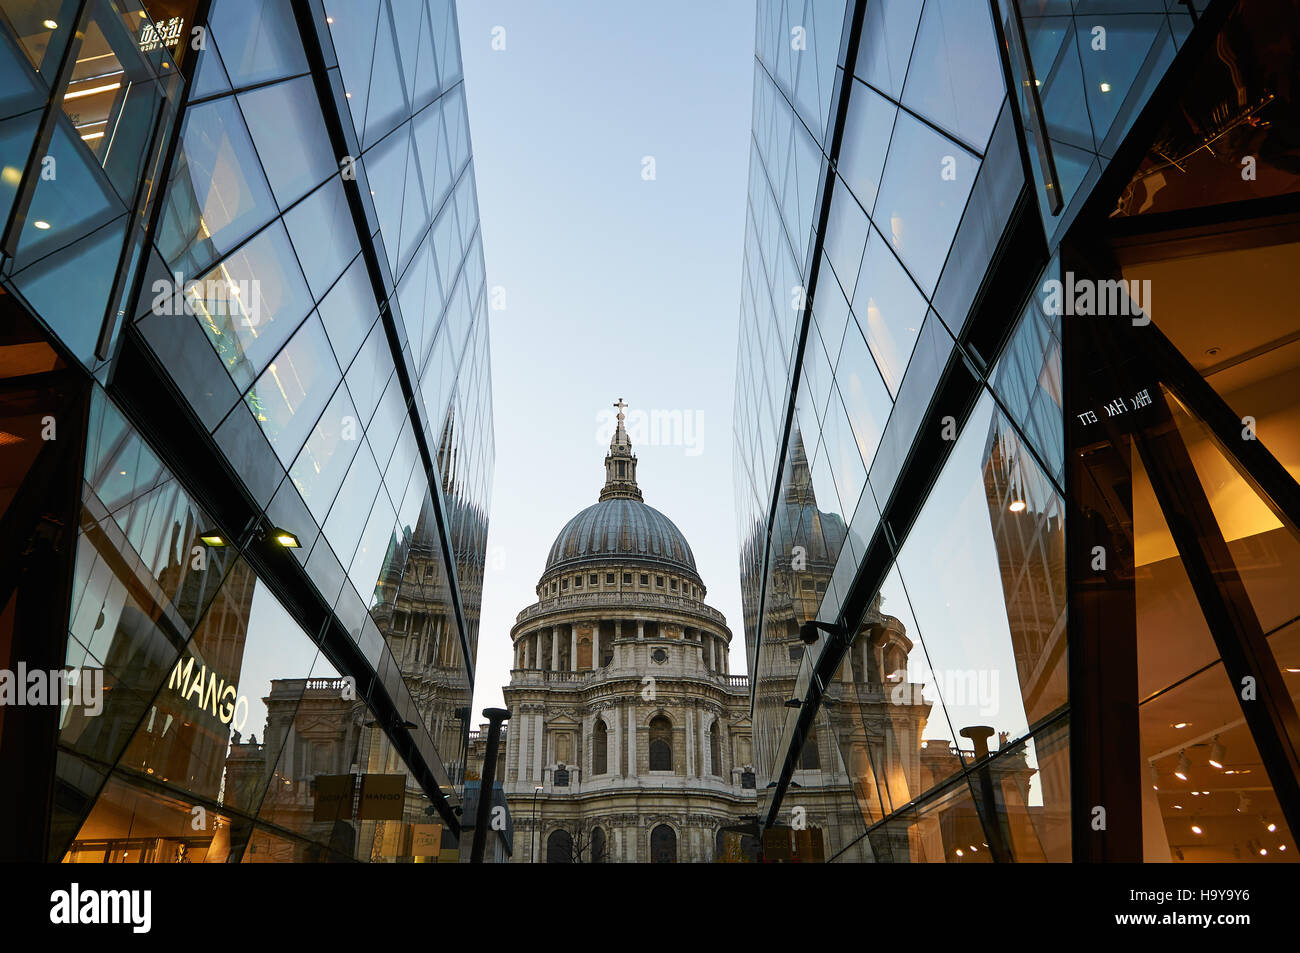 St Pauls Cathedral viewed from One New Change shopping mall, London UK - Stock Image